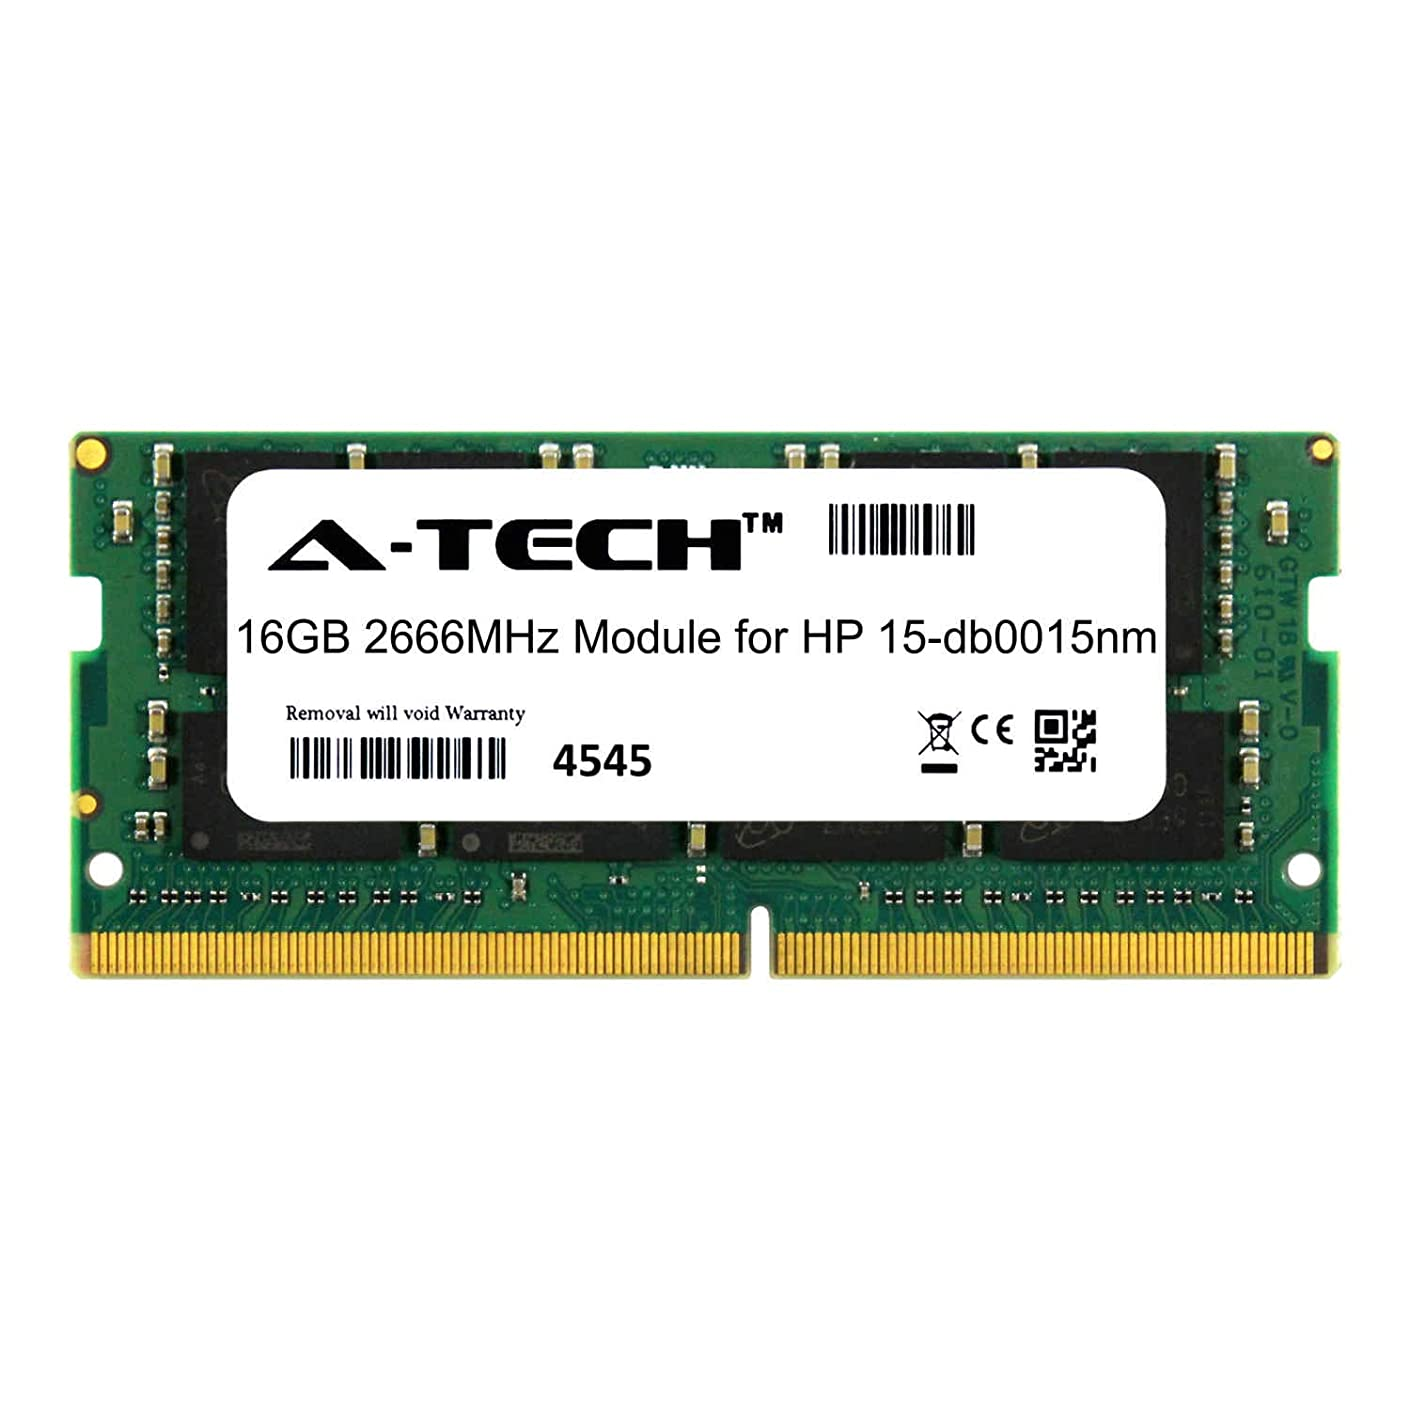 A-Tech 16GB Module for HP 15-db0015nm Laptop & Notebook Compatible DDR4 2666Mhz Memory Ram (ATMS381875A25832X1)